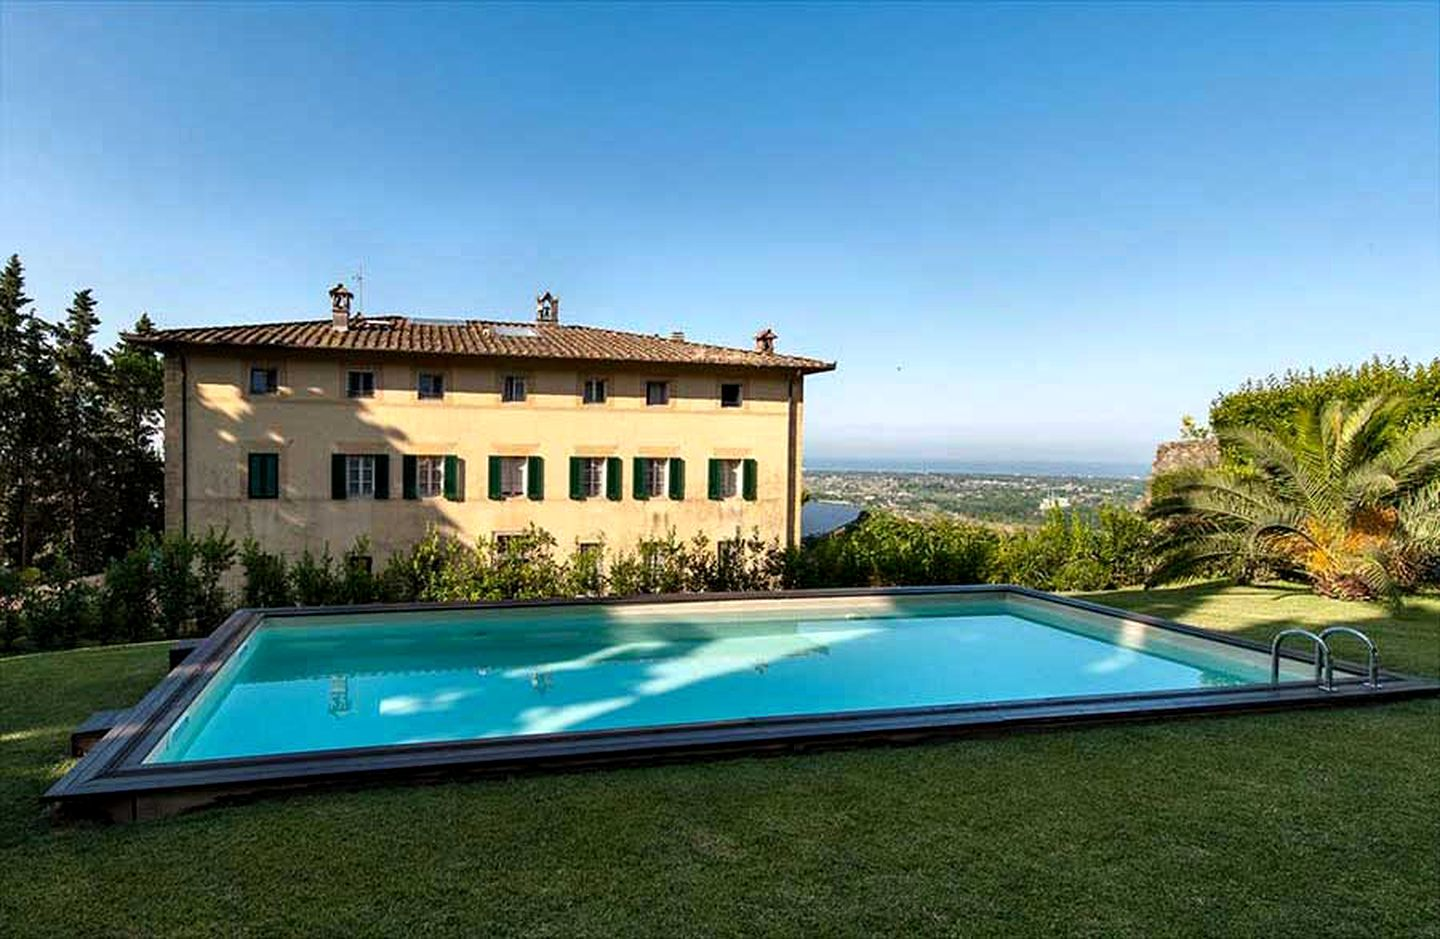 Villa rental with a pool overlooking Tuscany for holidays in Italy.